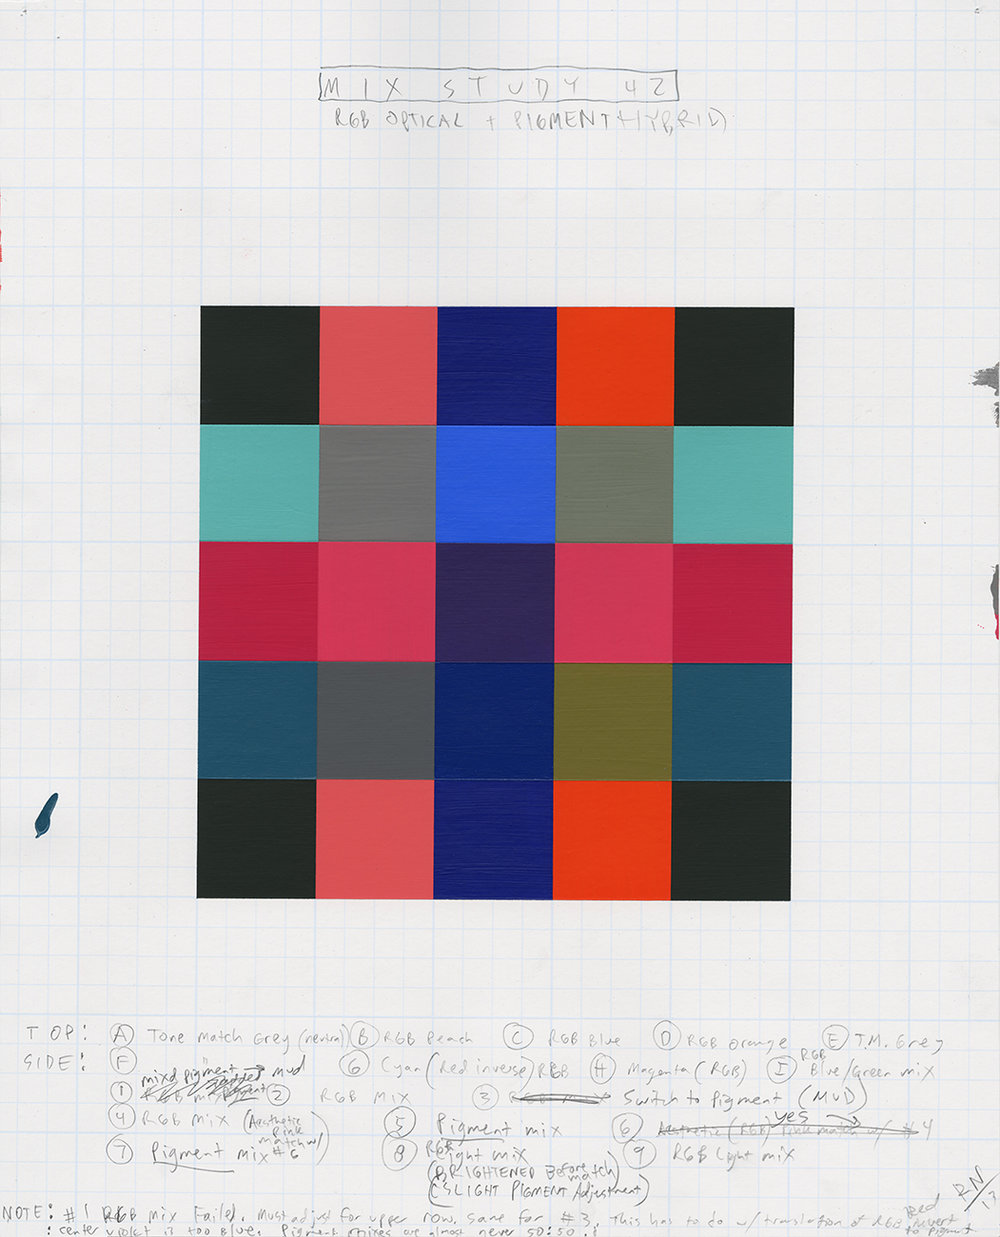 Mix Study   2013  Graphite, Acrylic on  Screenprinted graph paper  17 x 13 inches  (43.18 x 33.02 cm)